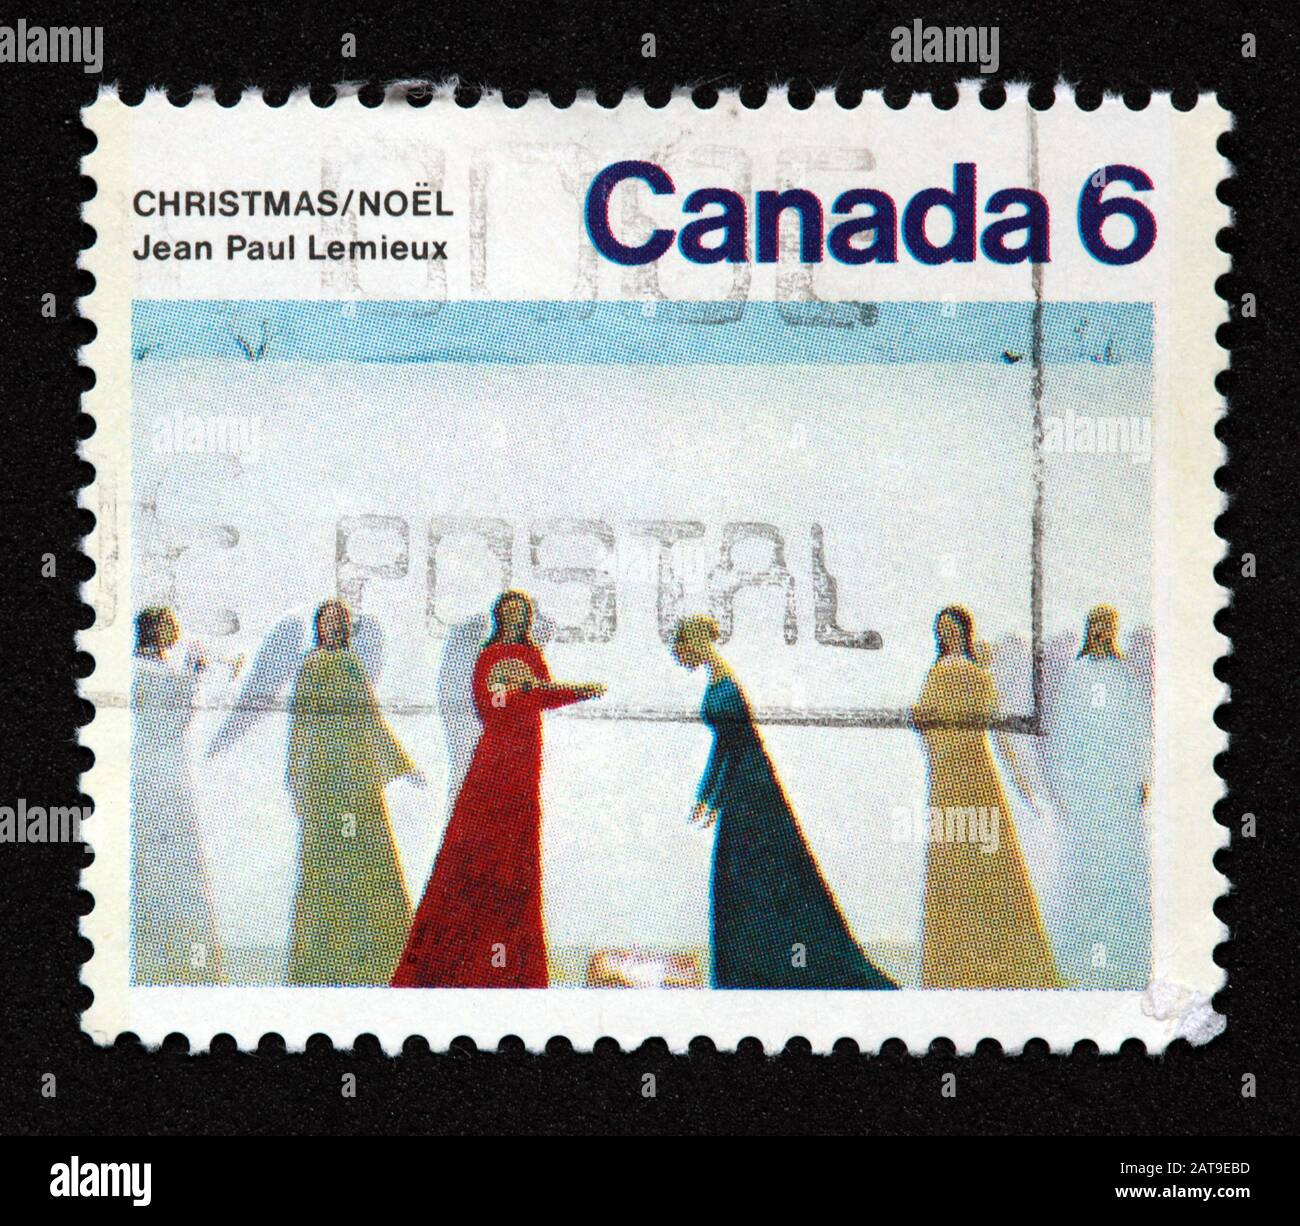 Hotpixuk,@Hotpixuk,GoTonySmith,stamp,postal,franked,frank,used stamps,used franked,used,franked stamp,from envelope,history,historic,old,poste,post office,communications,postage,sending letters,sending,parcels,Canada 6c,6c,6cent,$6,Christmas,Noel,angels,Jean Paul,Lemieux,Canadian